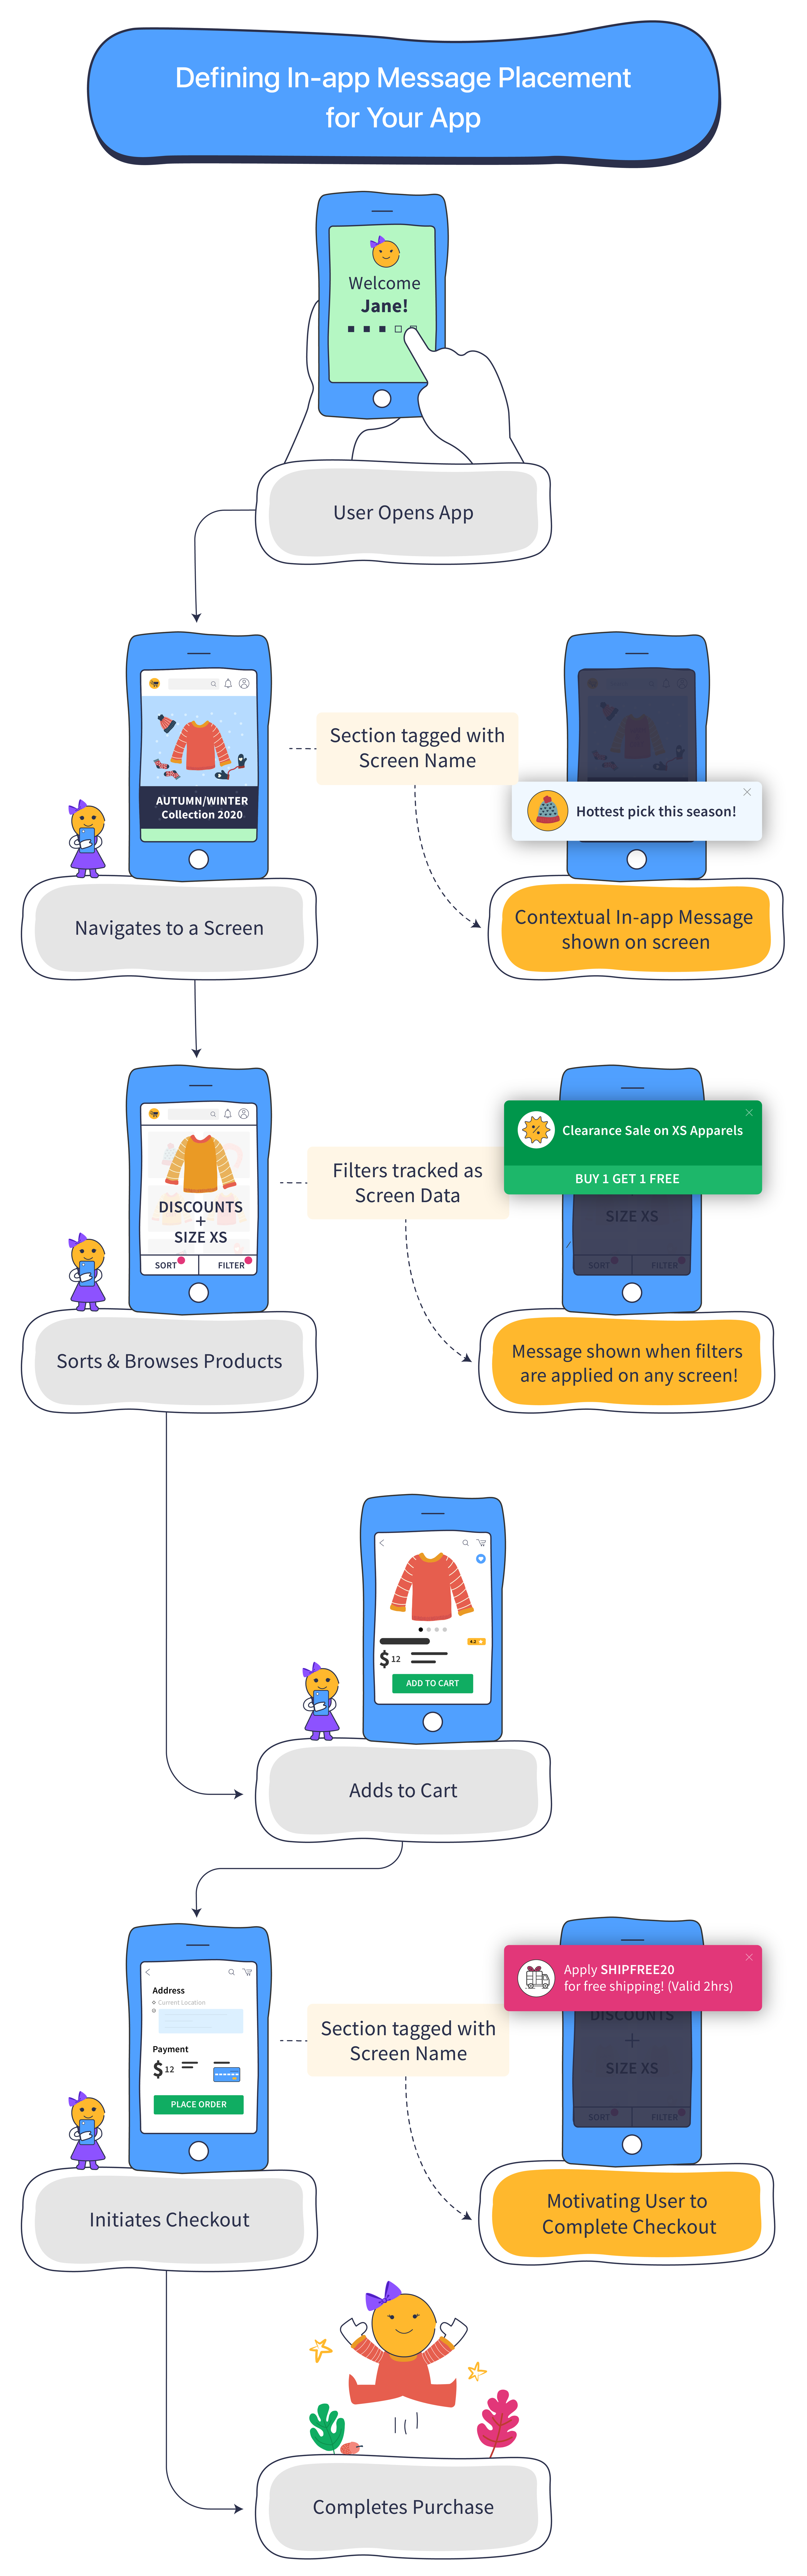 How In-app Message Targeting Works